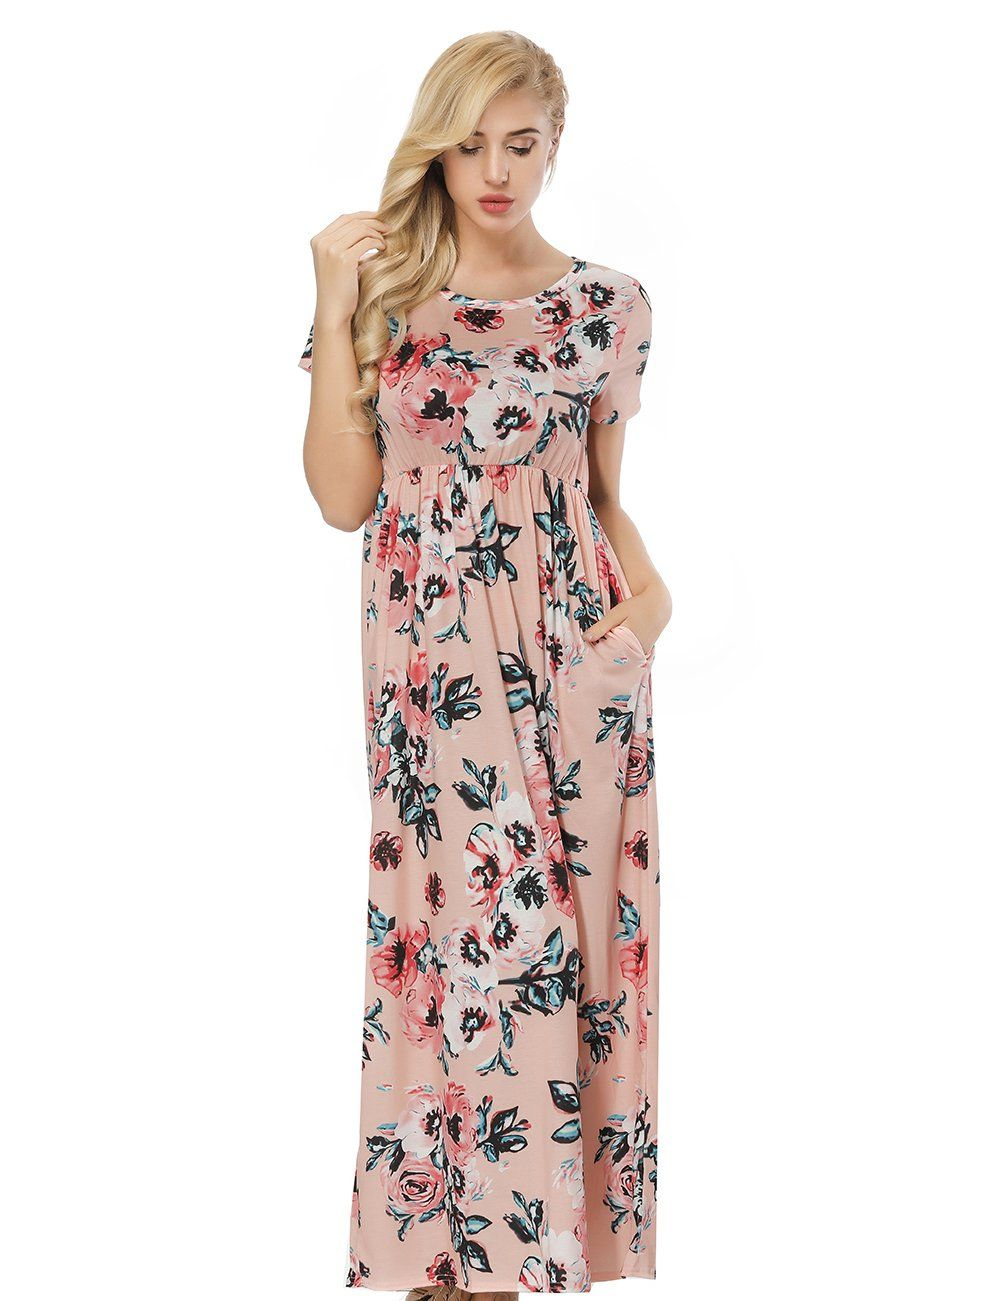 Slender orange round neck floral printed dress ruffle waist